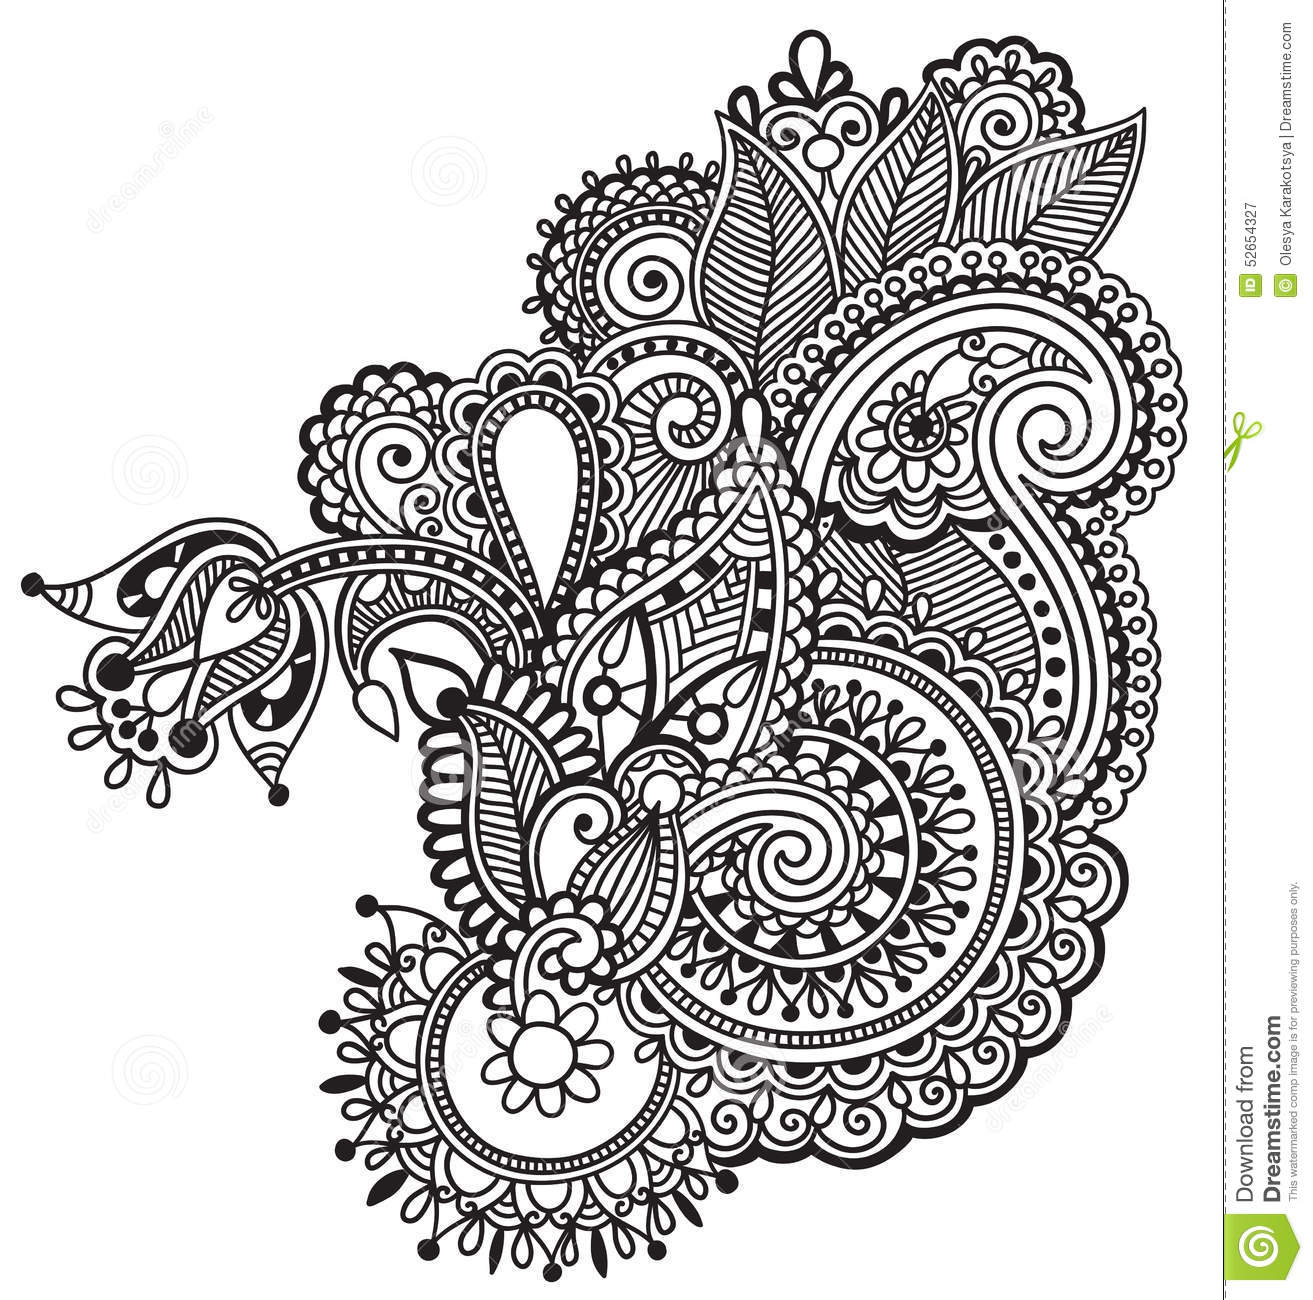 Floral Art Line Design : Black line art ornate flower design ukrainian stock